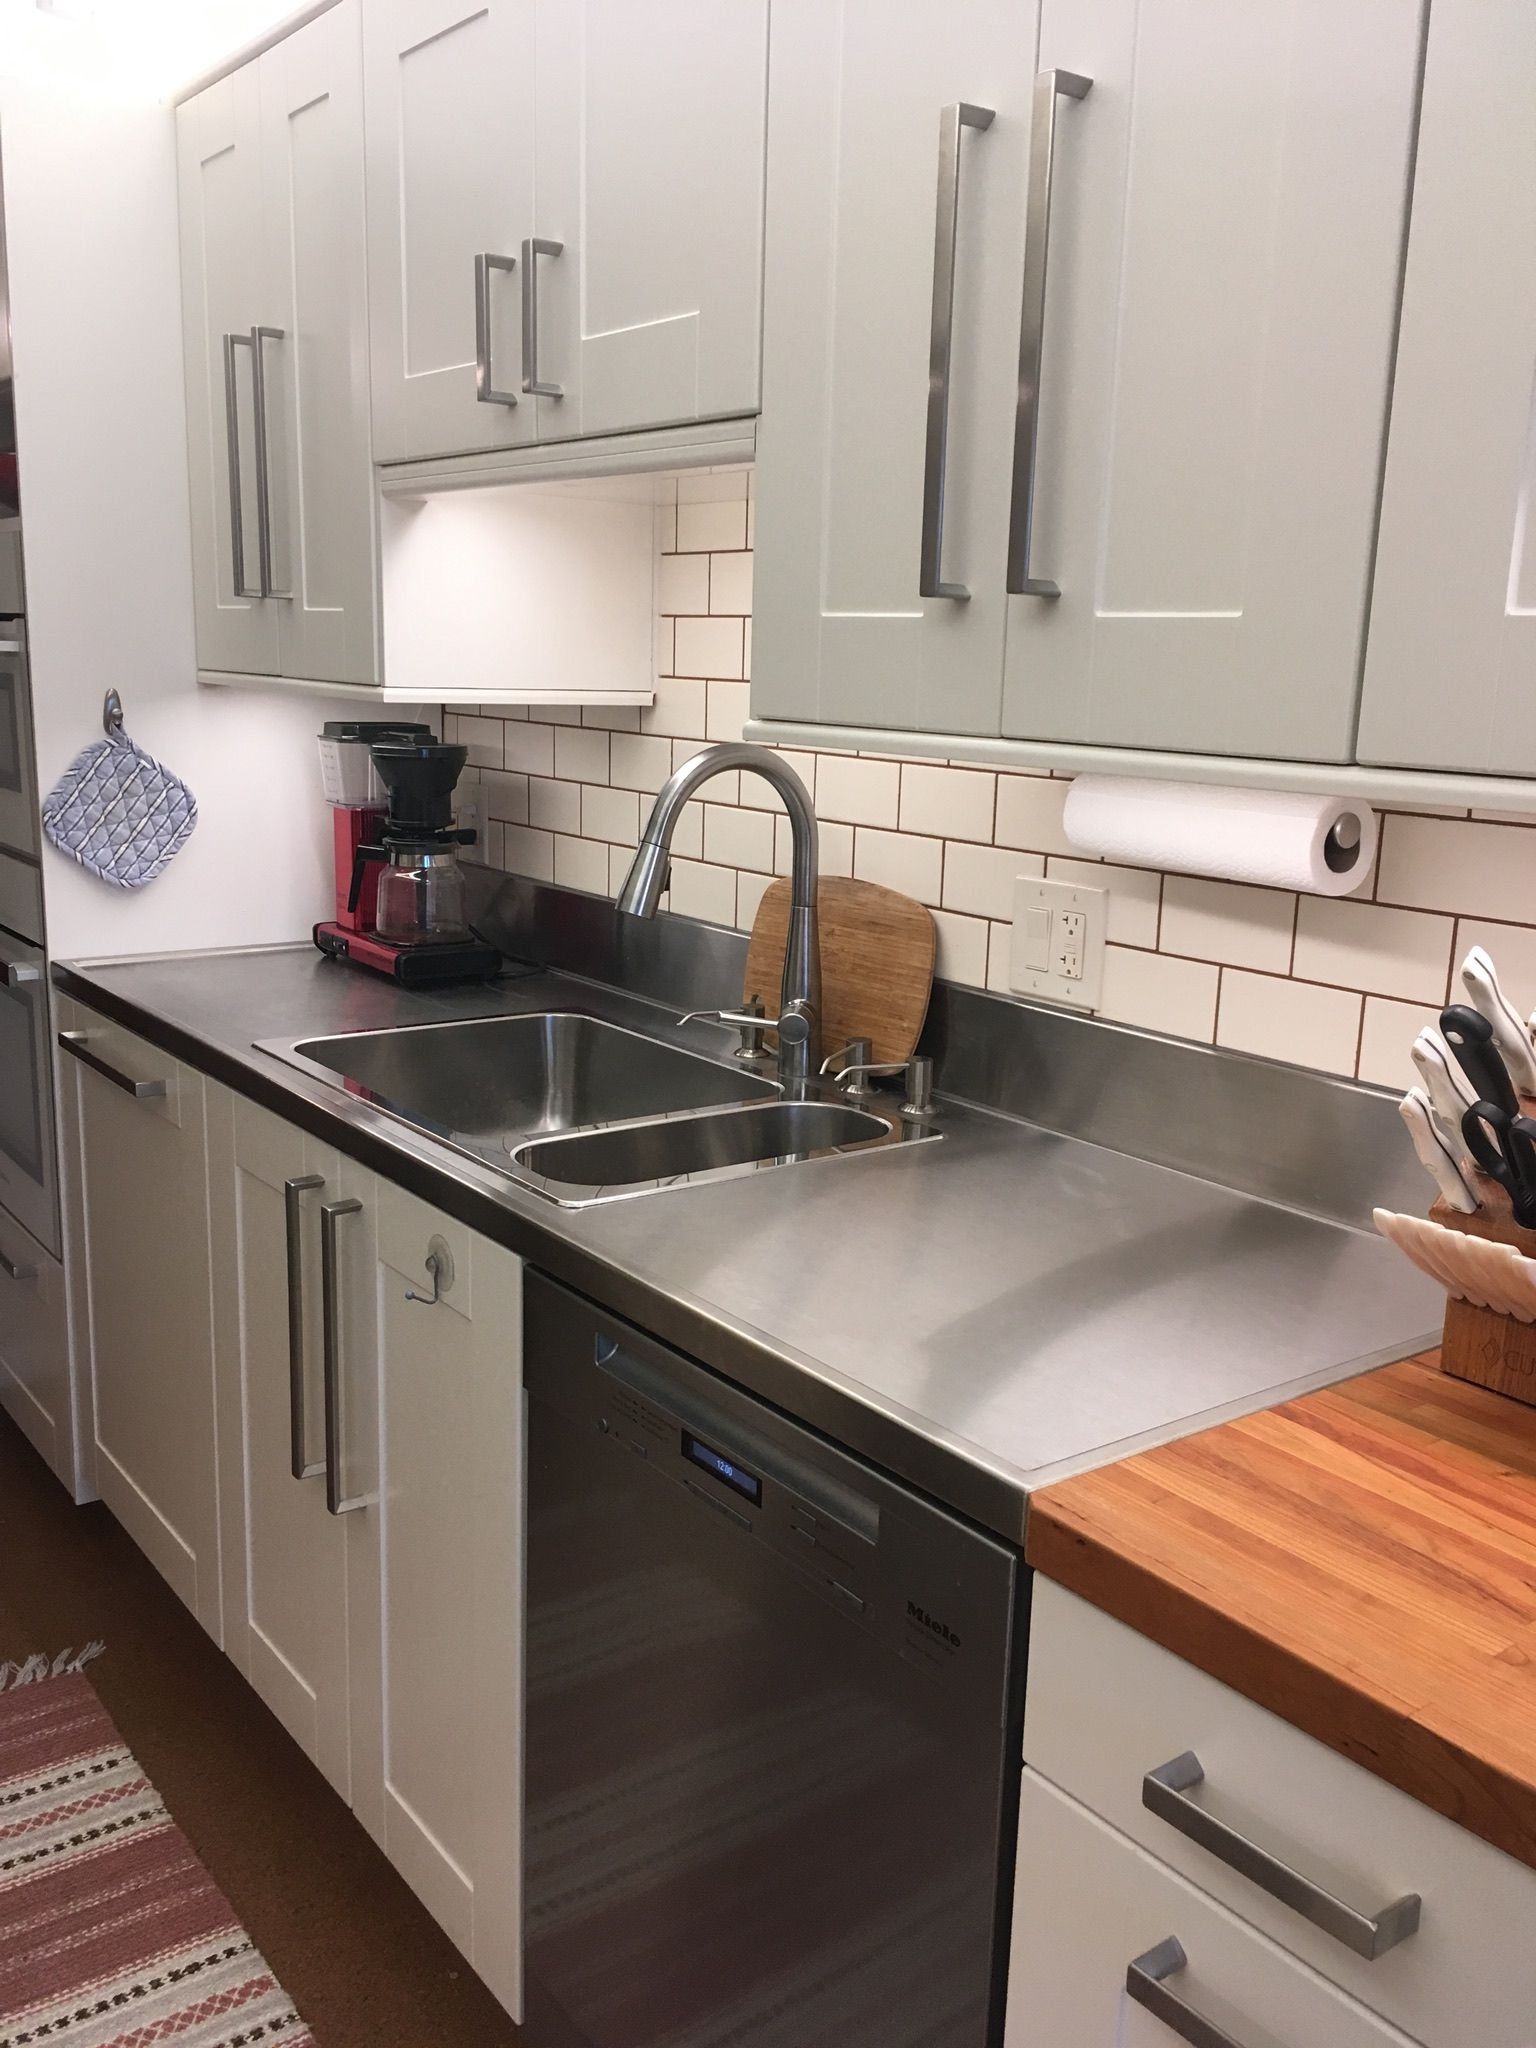 We Love The Way This Stainless Steel Countertop With Marine Edge